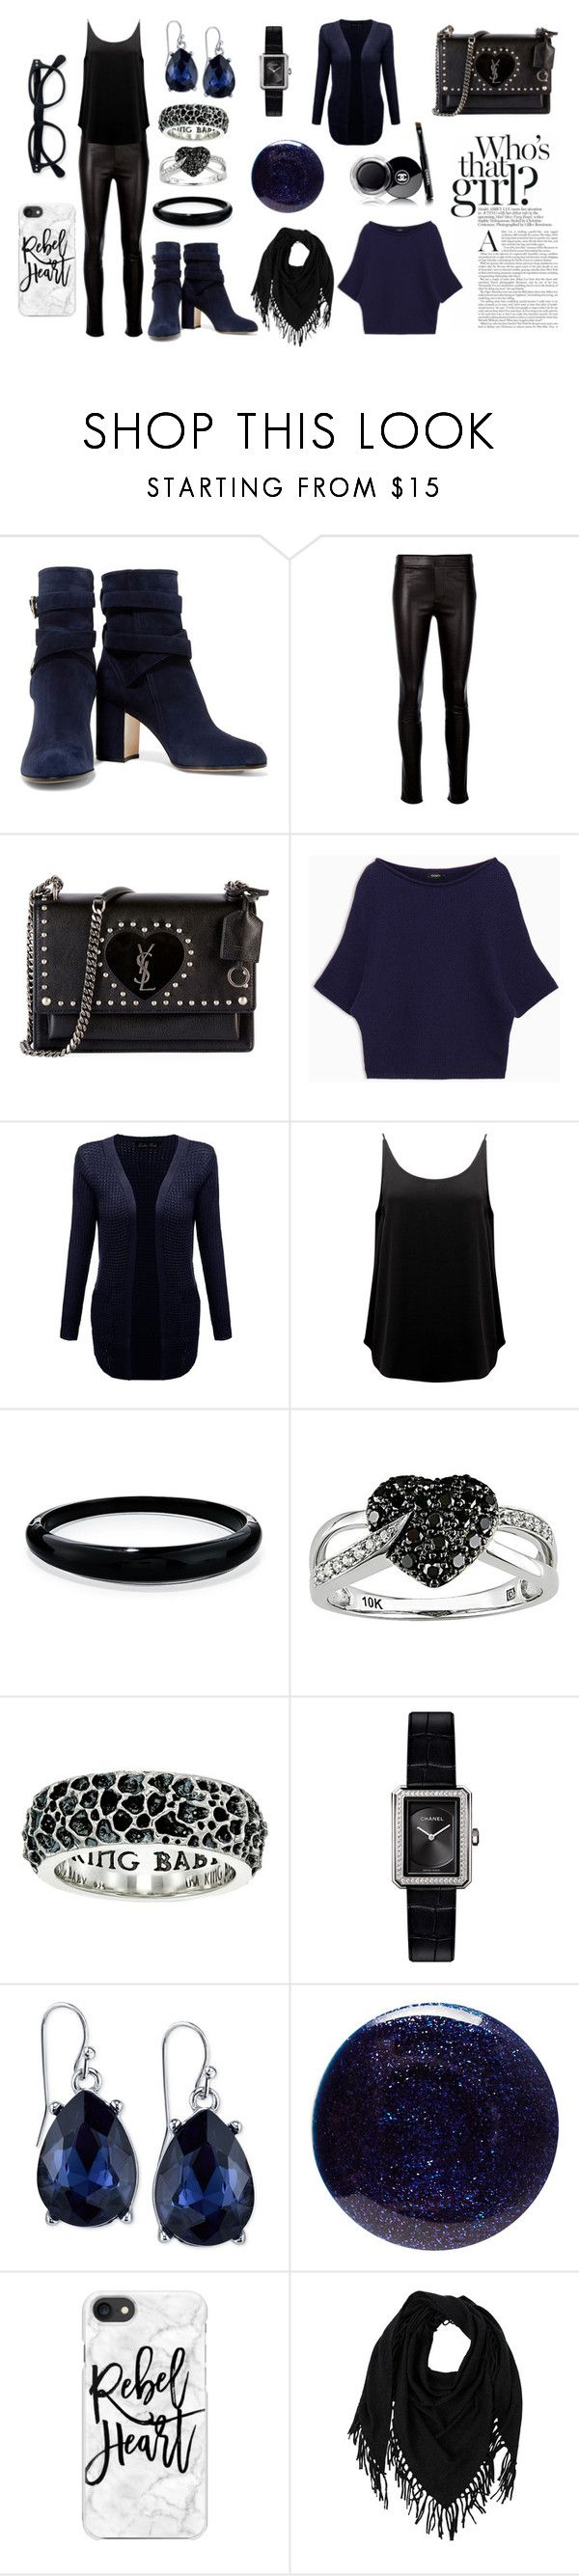 """""""glam rock"""" by celine-diaz-1 on Polyvore featuring mode, Gianvito Rossi, Helmut Lang, Yves Saint Laurent, Max&Co., BA&SH, Alexis Bittar, Ice, King Baby Studio et Chanel"""